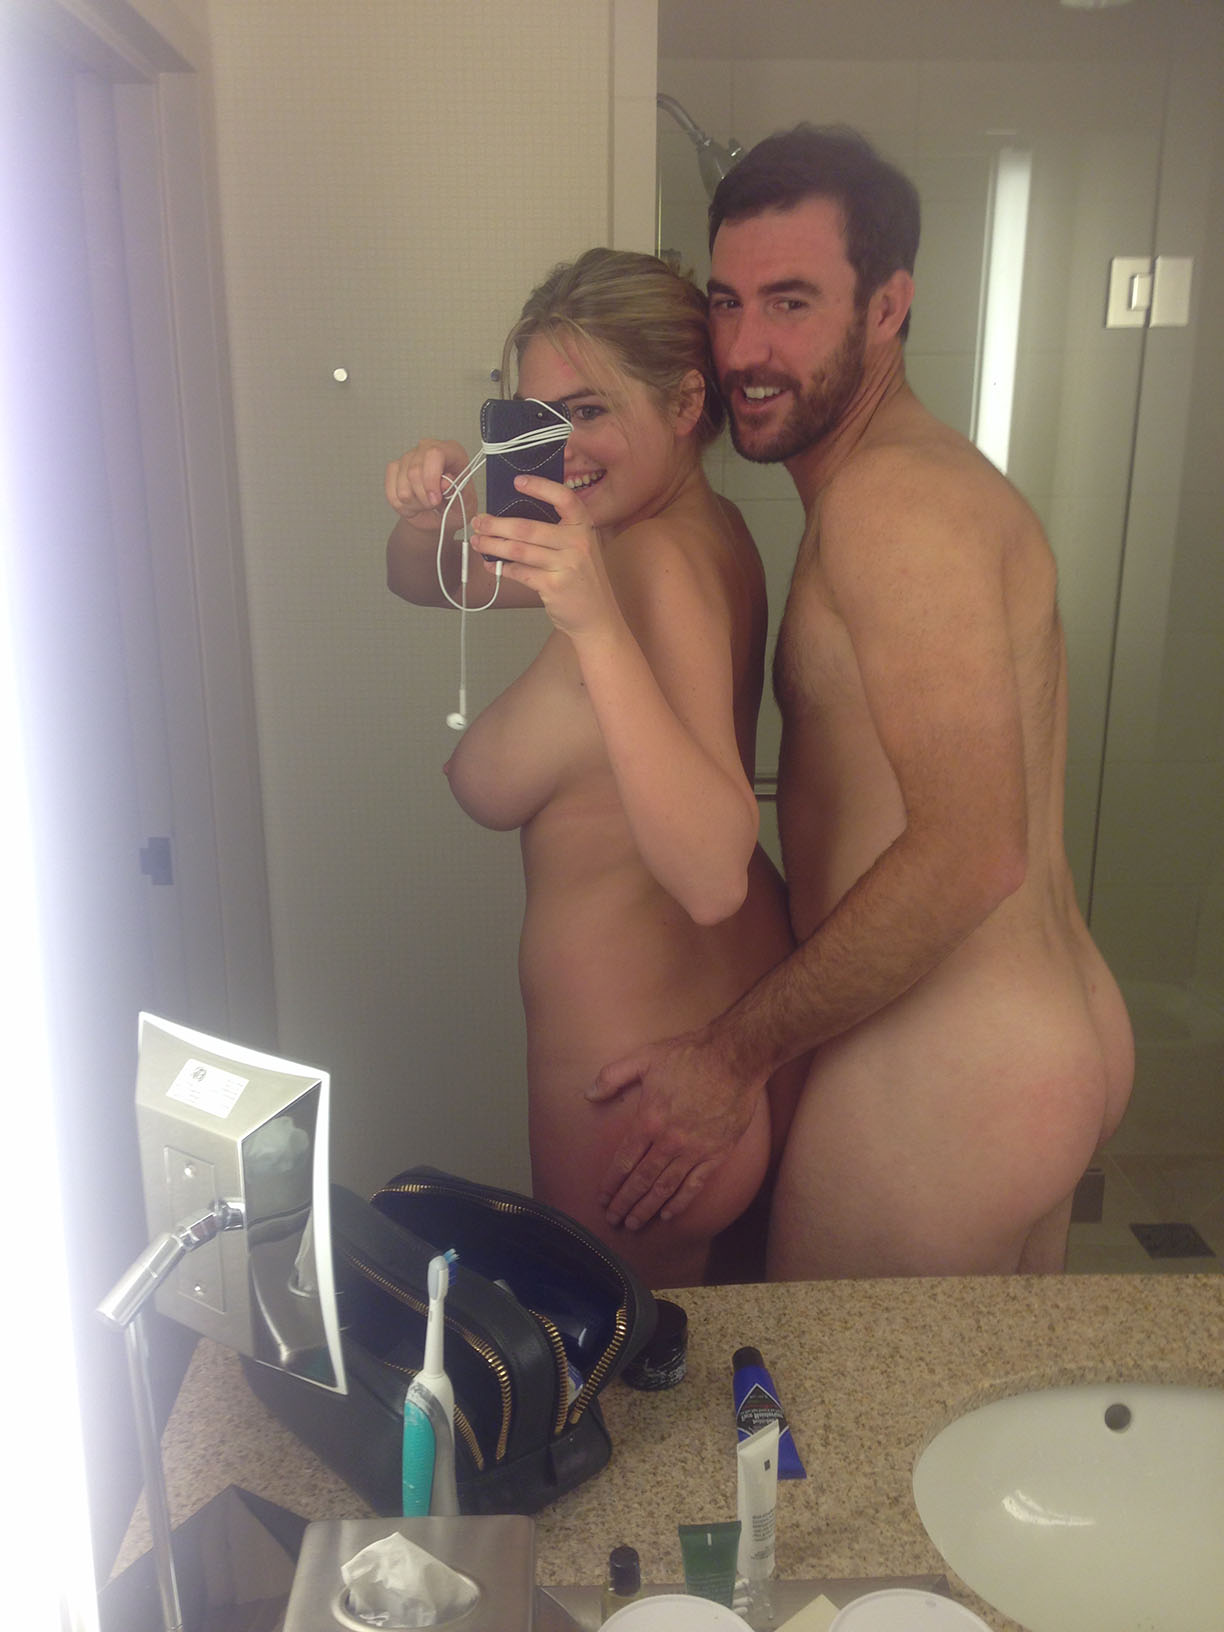 Kate Upton Leaked Photos, Boobs and Full Nude Pics